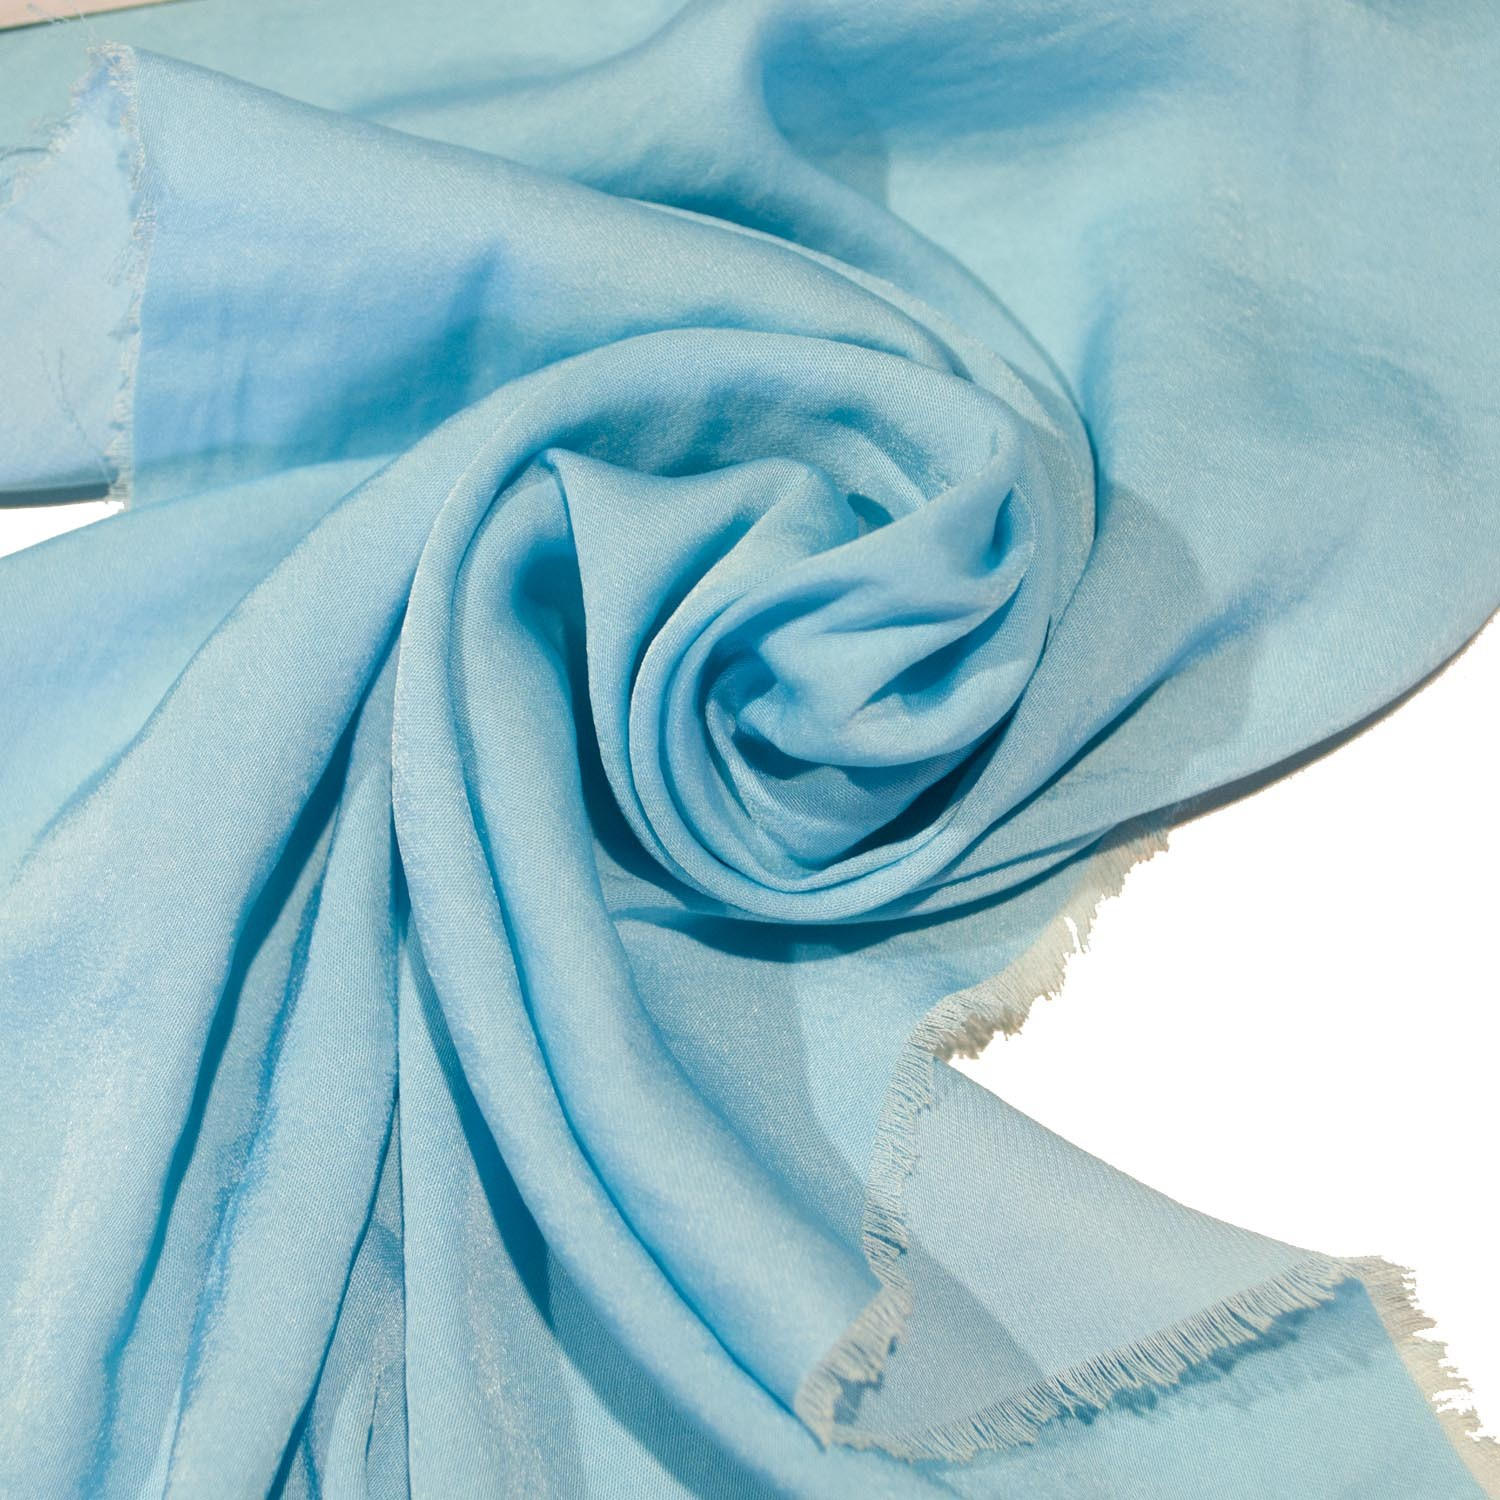 Polyester Fabric Sea-Island Polyester Filament Fabric Chemical Fabric Dyed Fabric for Garment Dress Shirt Home Textile